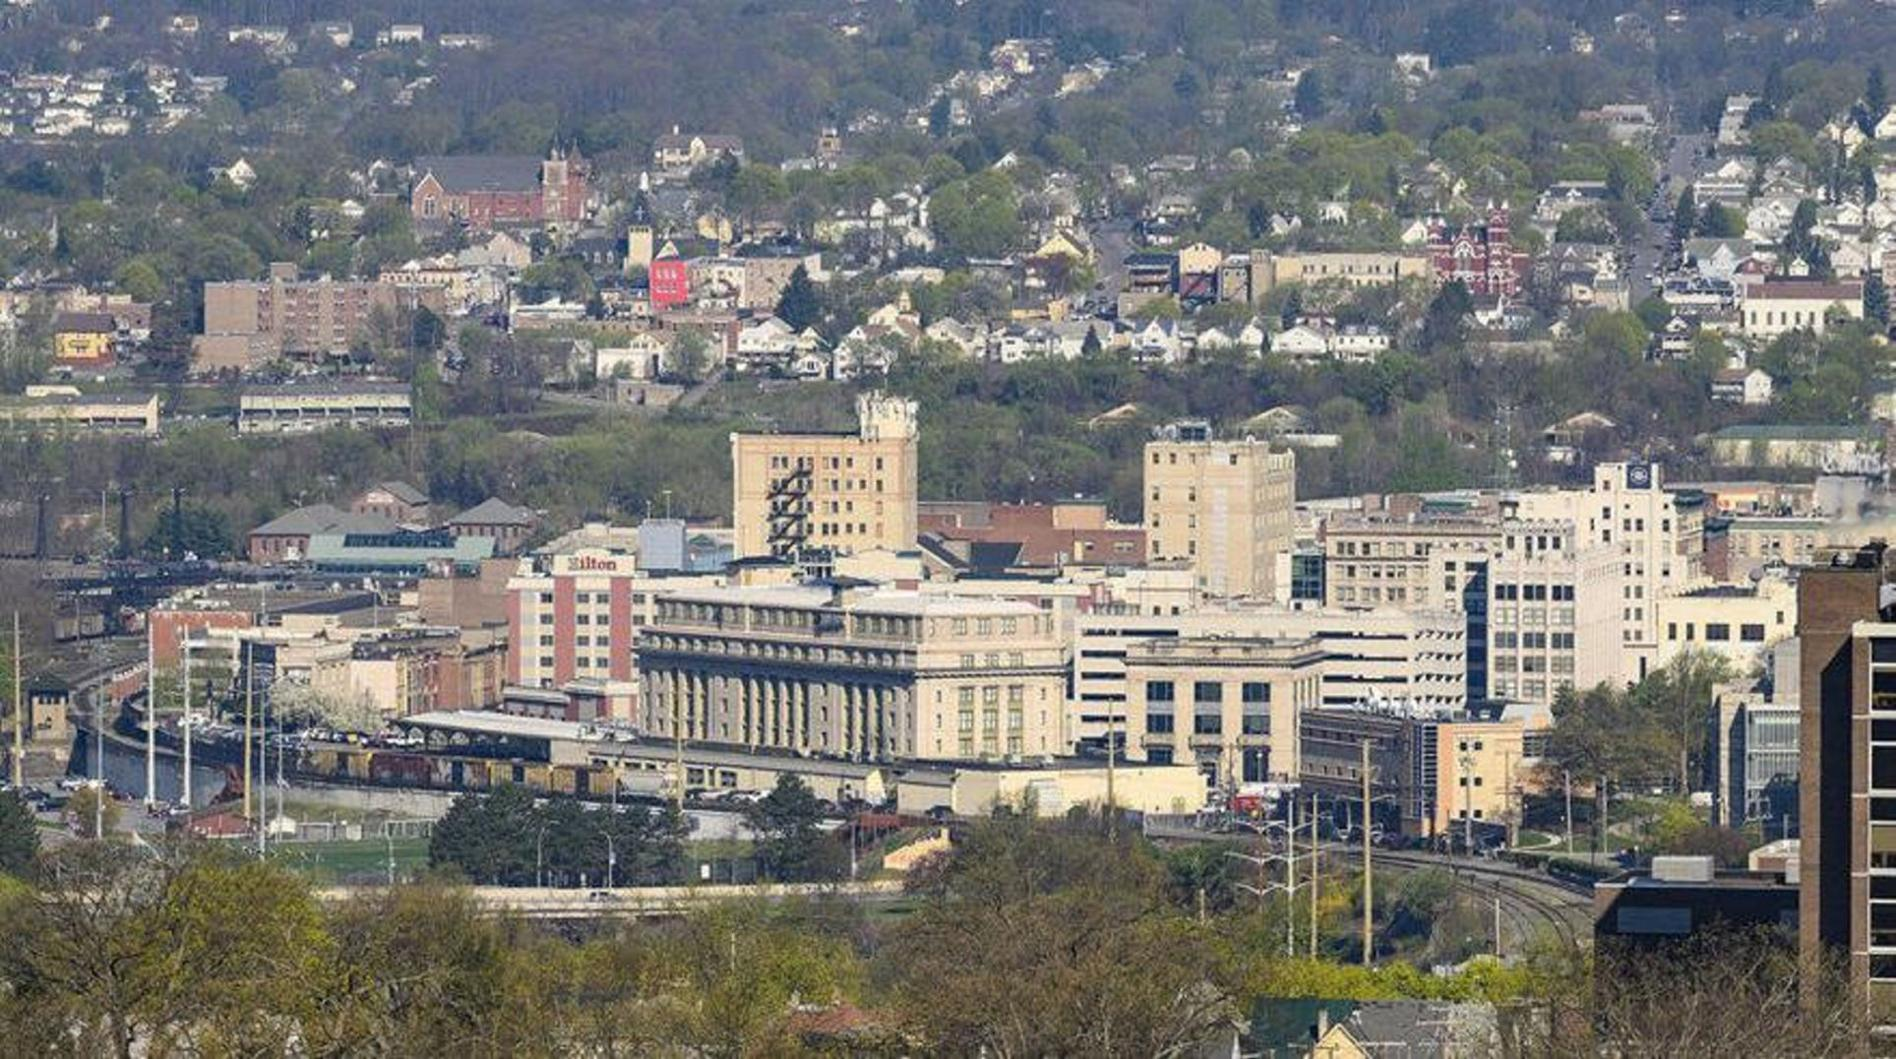 'Work from Here' marketing initiative aims to sell Scranton